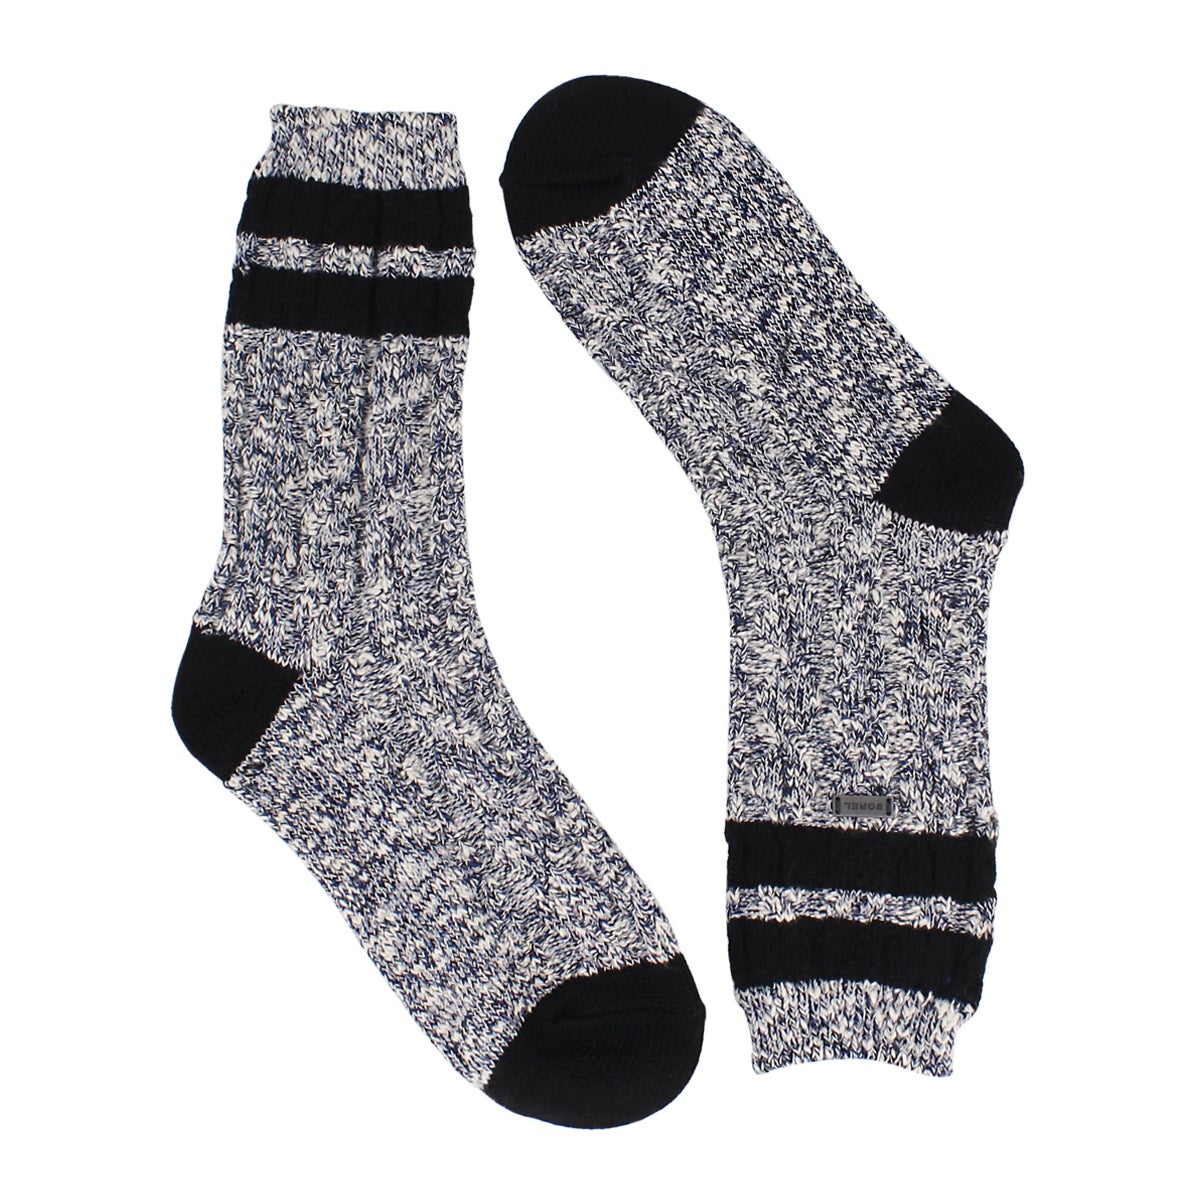 Women's VARSITY STRIPE aviation/blk tall socks